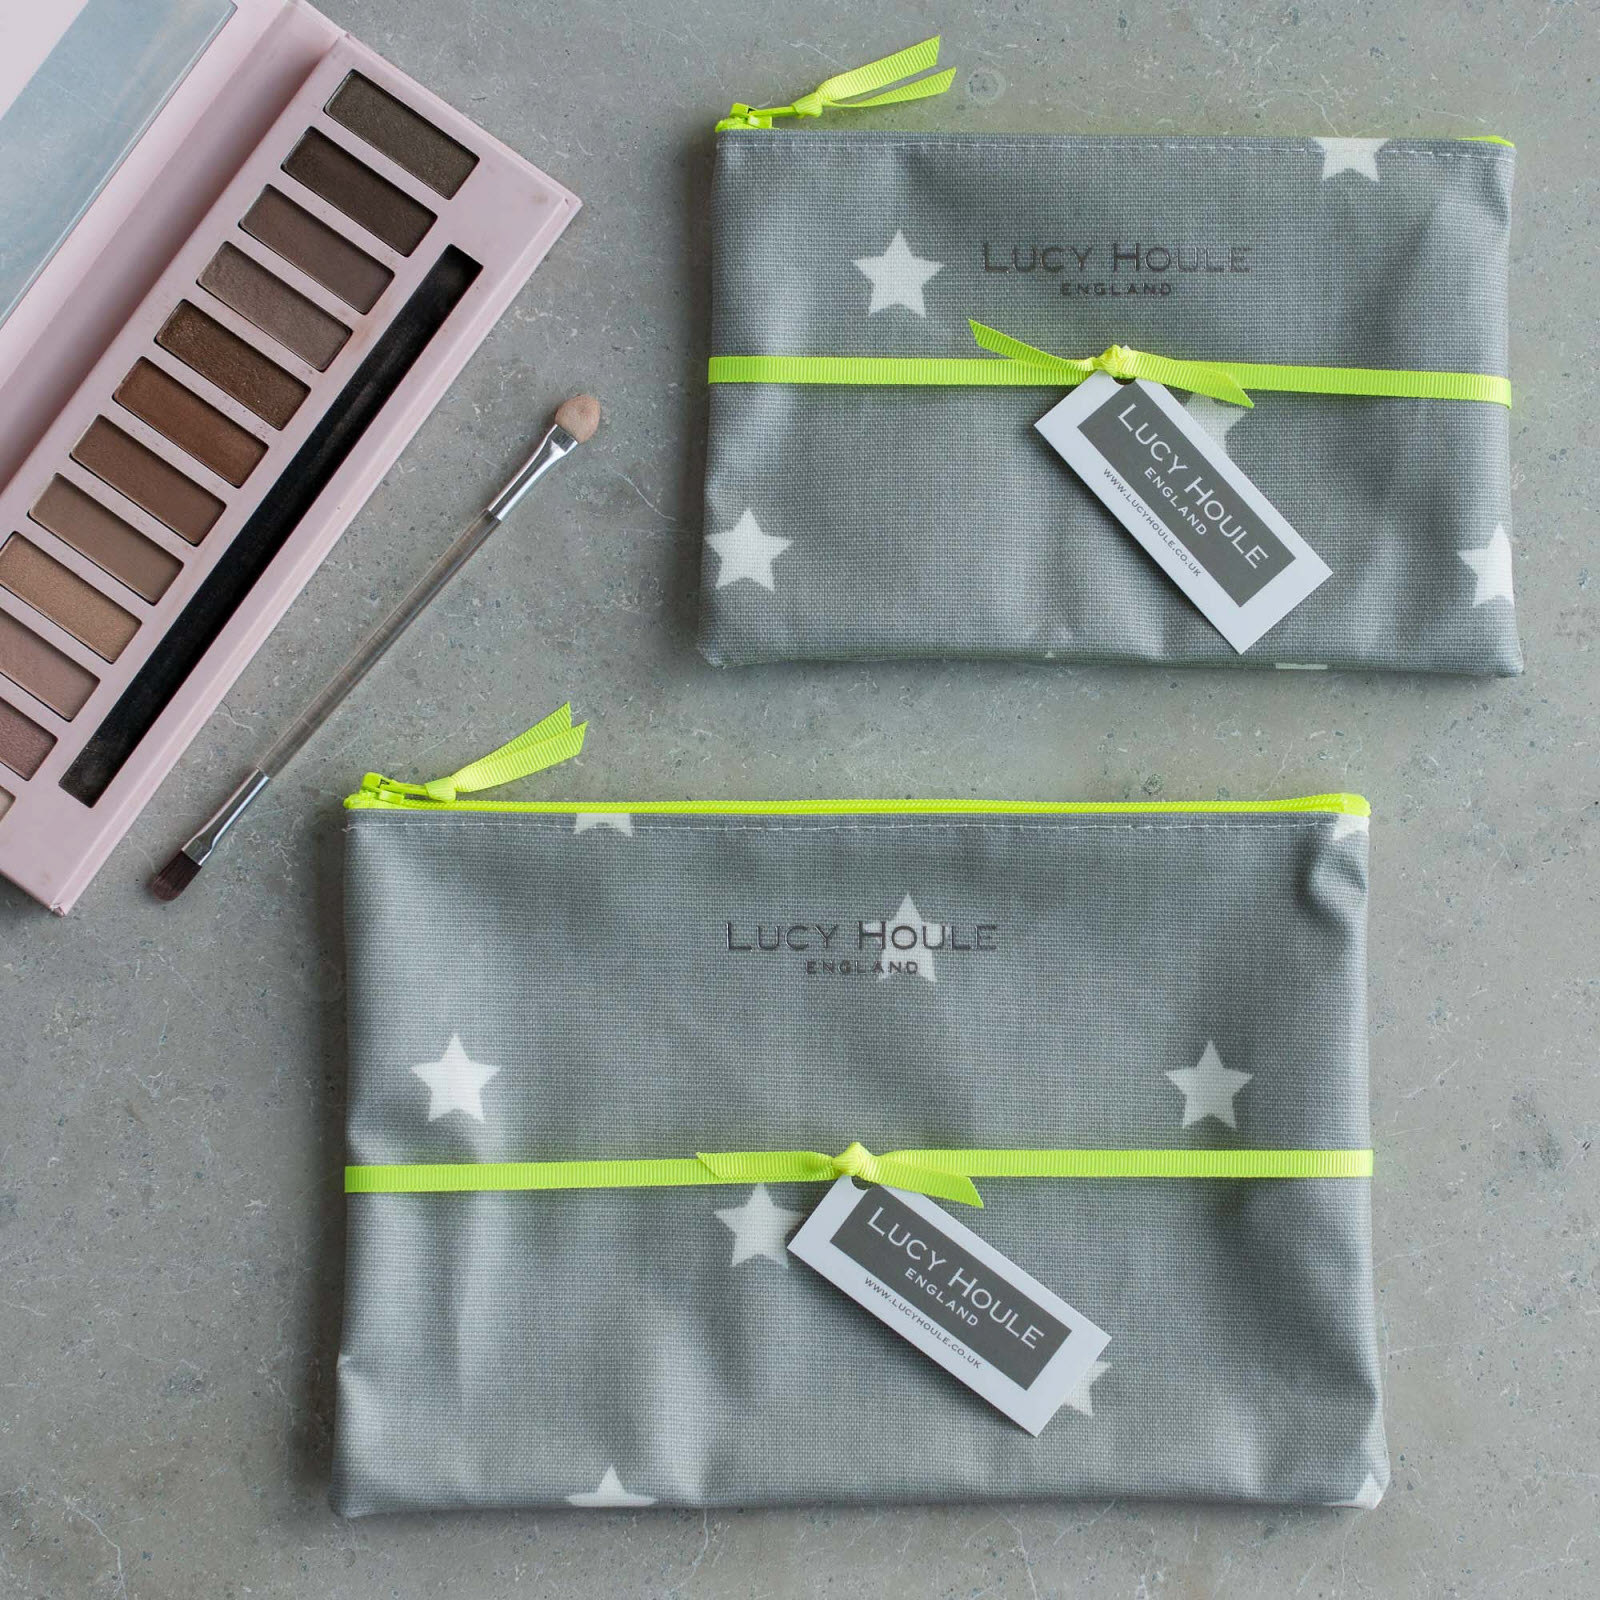 Grey & White Star Make-Up Bag with Yellow Neon Zip 'Limited Edition'